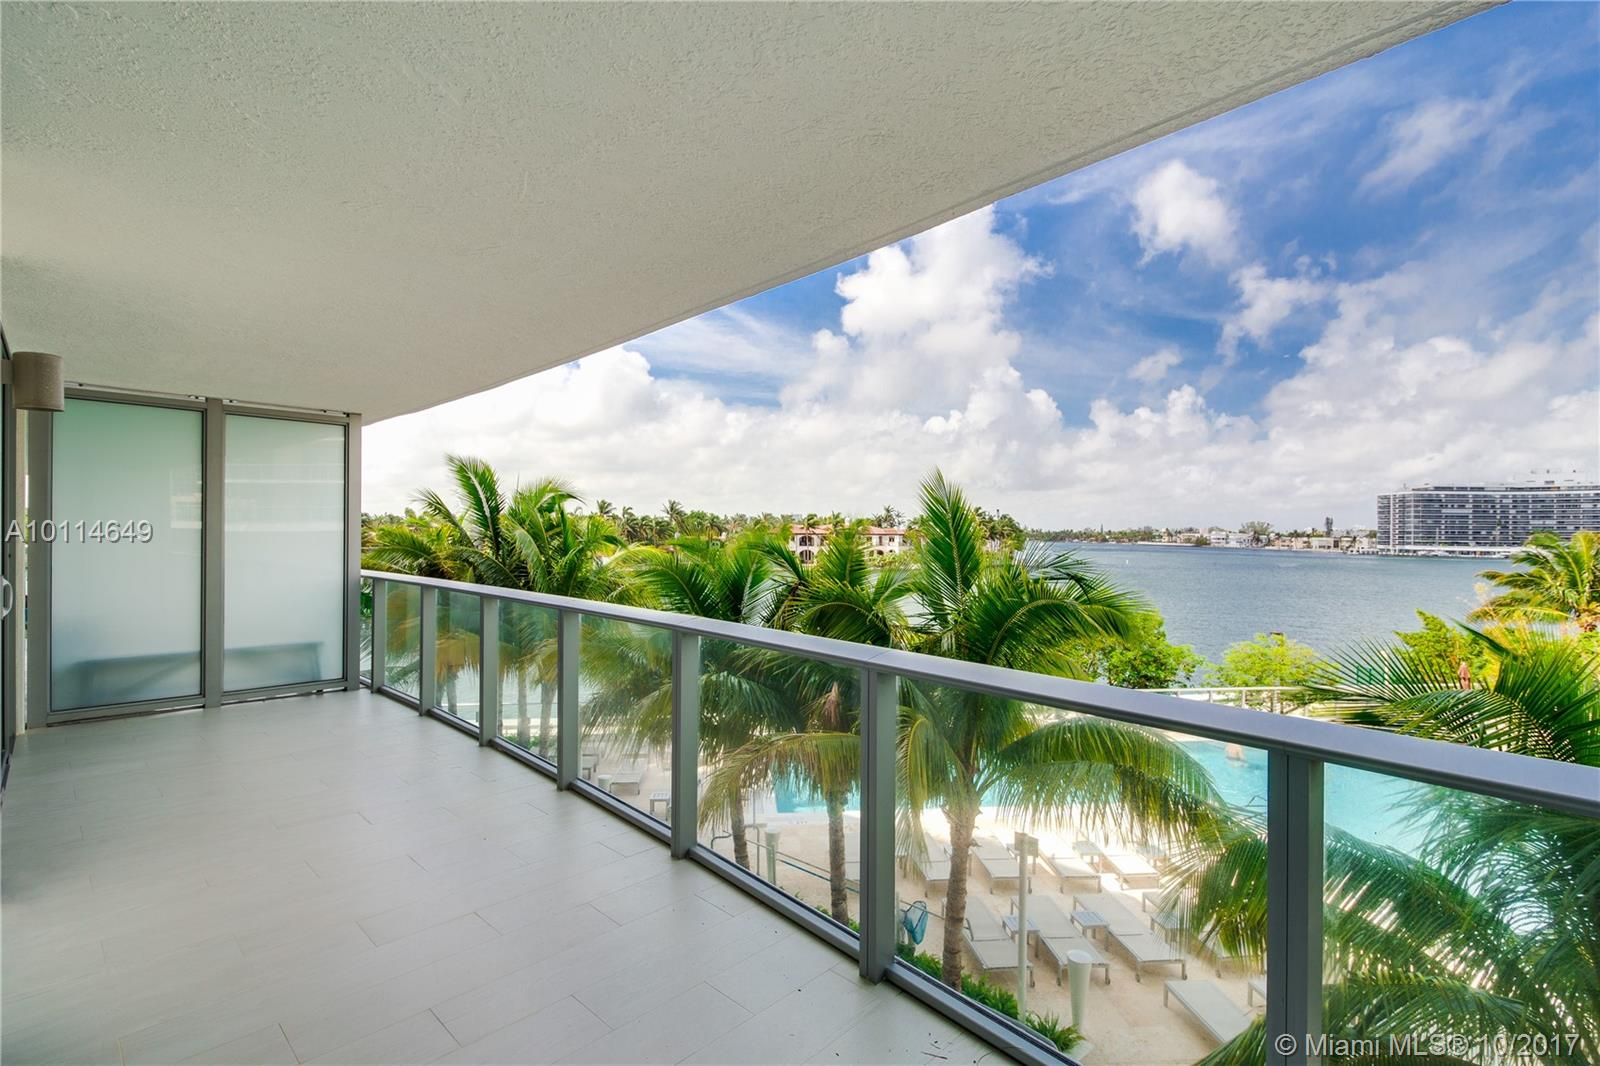 6620 Indian Creek Dr. #312, Miami Beach FL, 33141